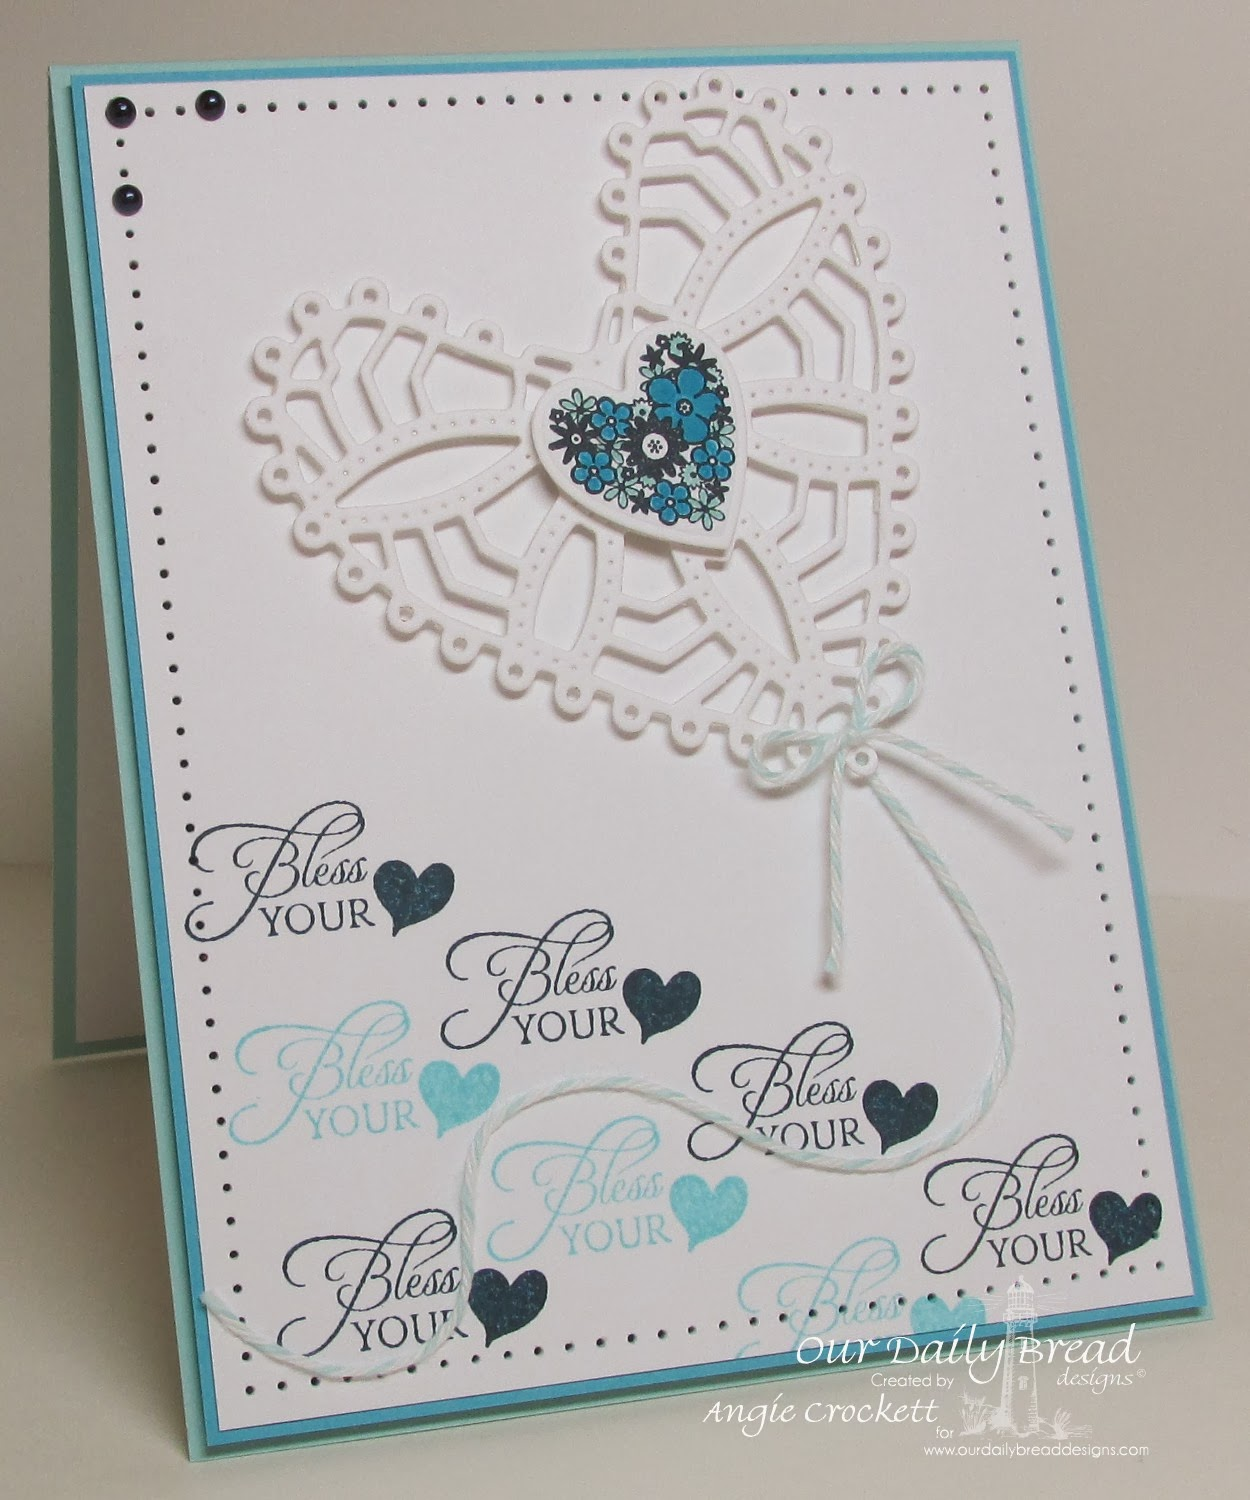 ODBD Clean Heart, Bless Your Heart, ODBD Custom Ornate Hearts Die Set, Card Designer Angie Crockett